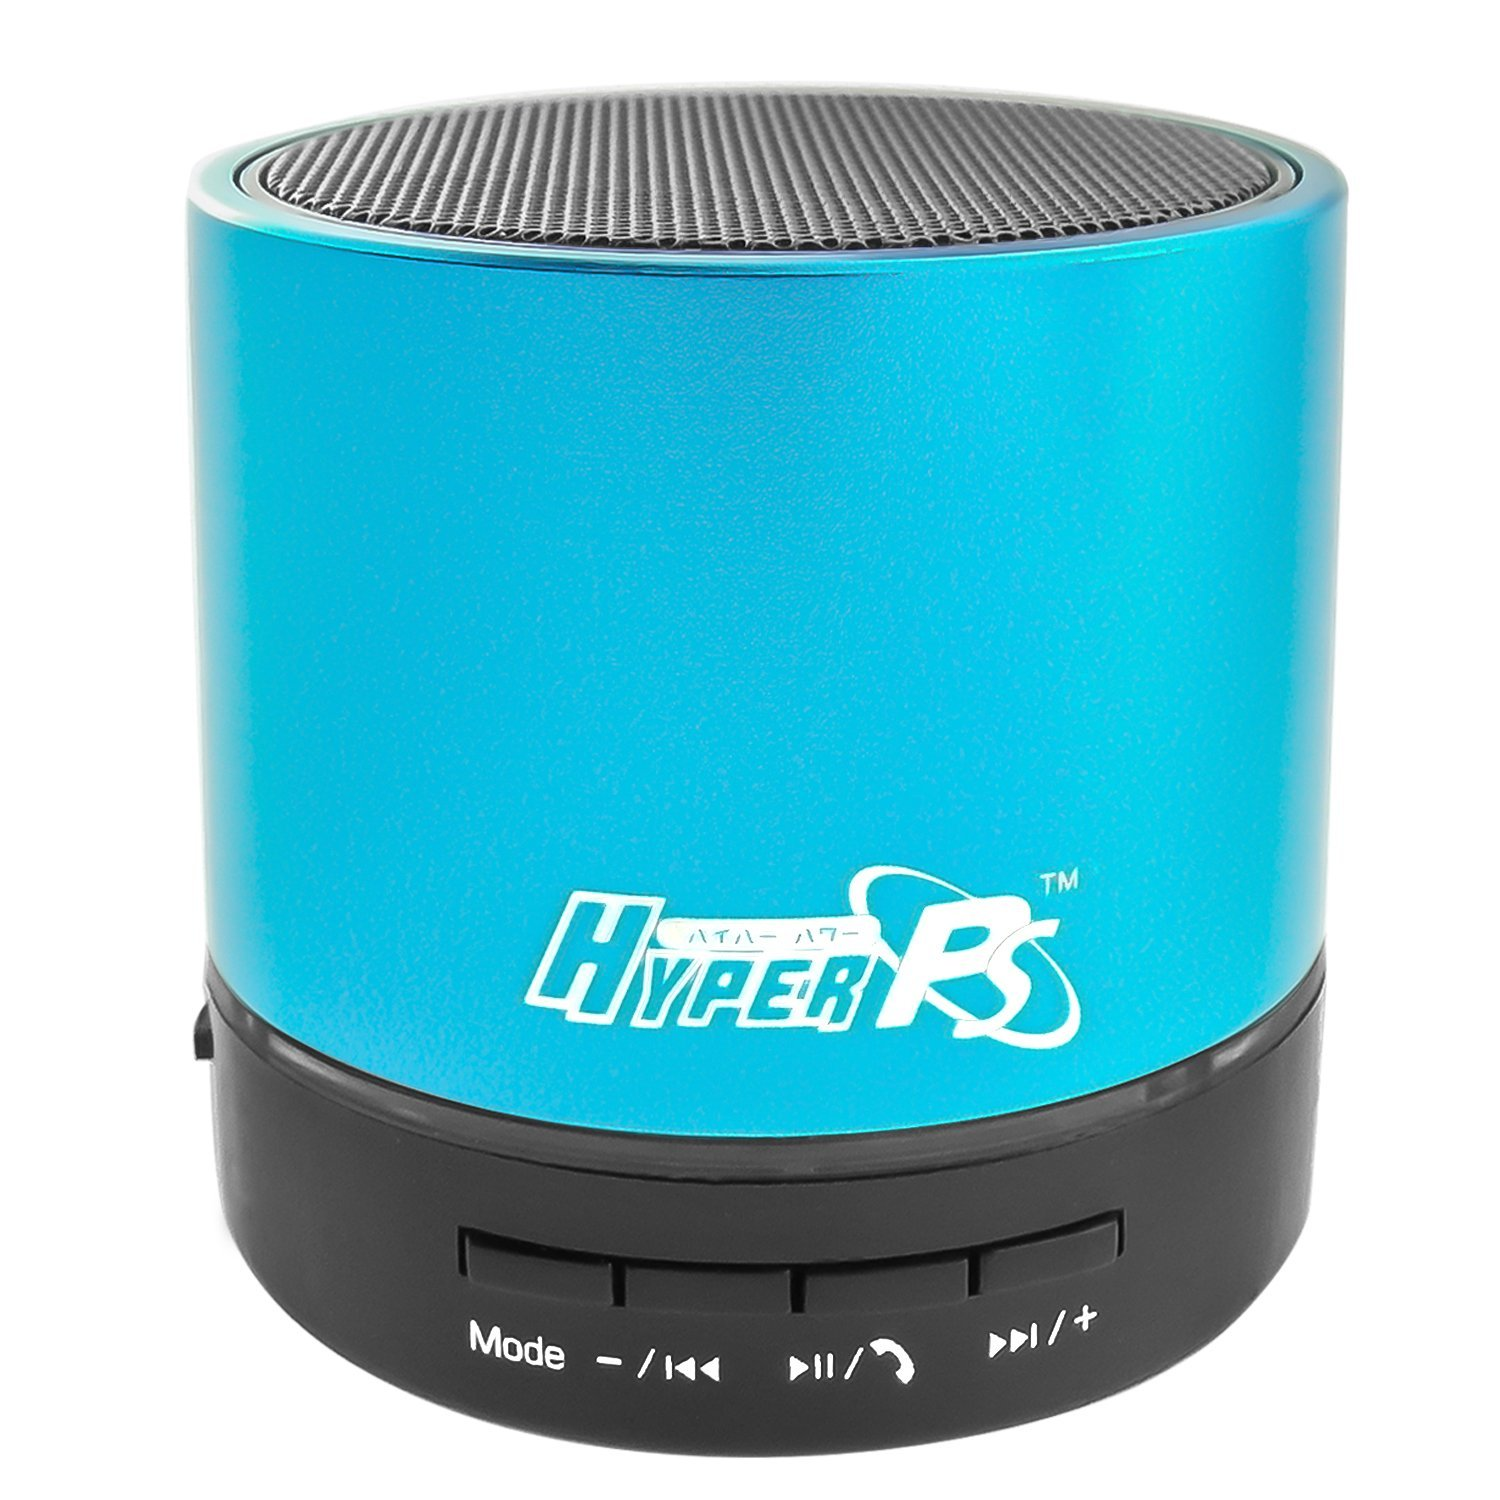 HyperPS - Bluetooth Wireless Mini Portable Super Bass Speaker with Built-in Mp3 Player Supporting to Play from Micro SD Card / USB Thumb Drive & Microphone for Handfree Phone call For iphone Samsung Tablet PC wireless bluetooth speaker led audio portable mini subwoofer